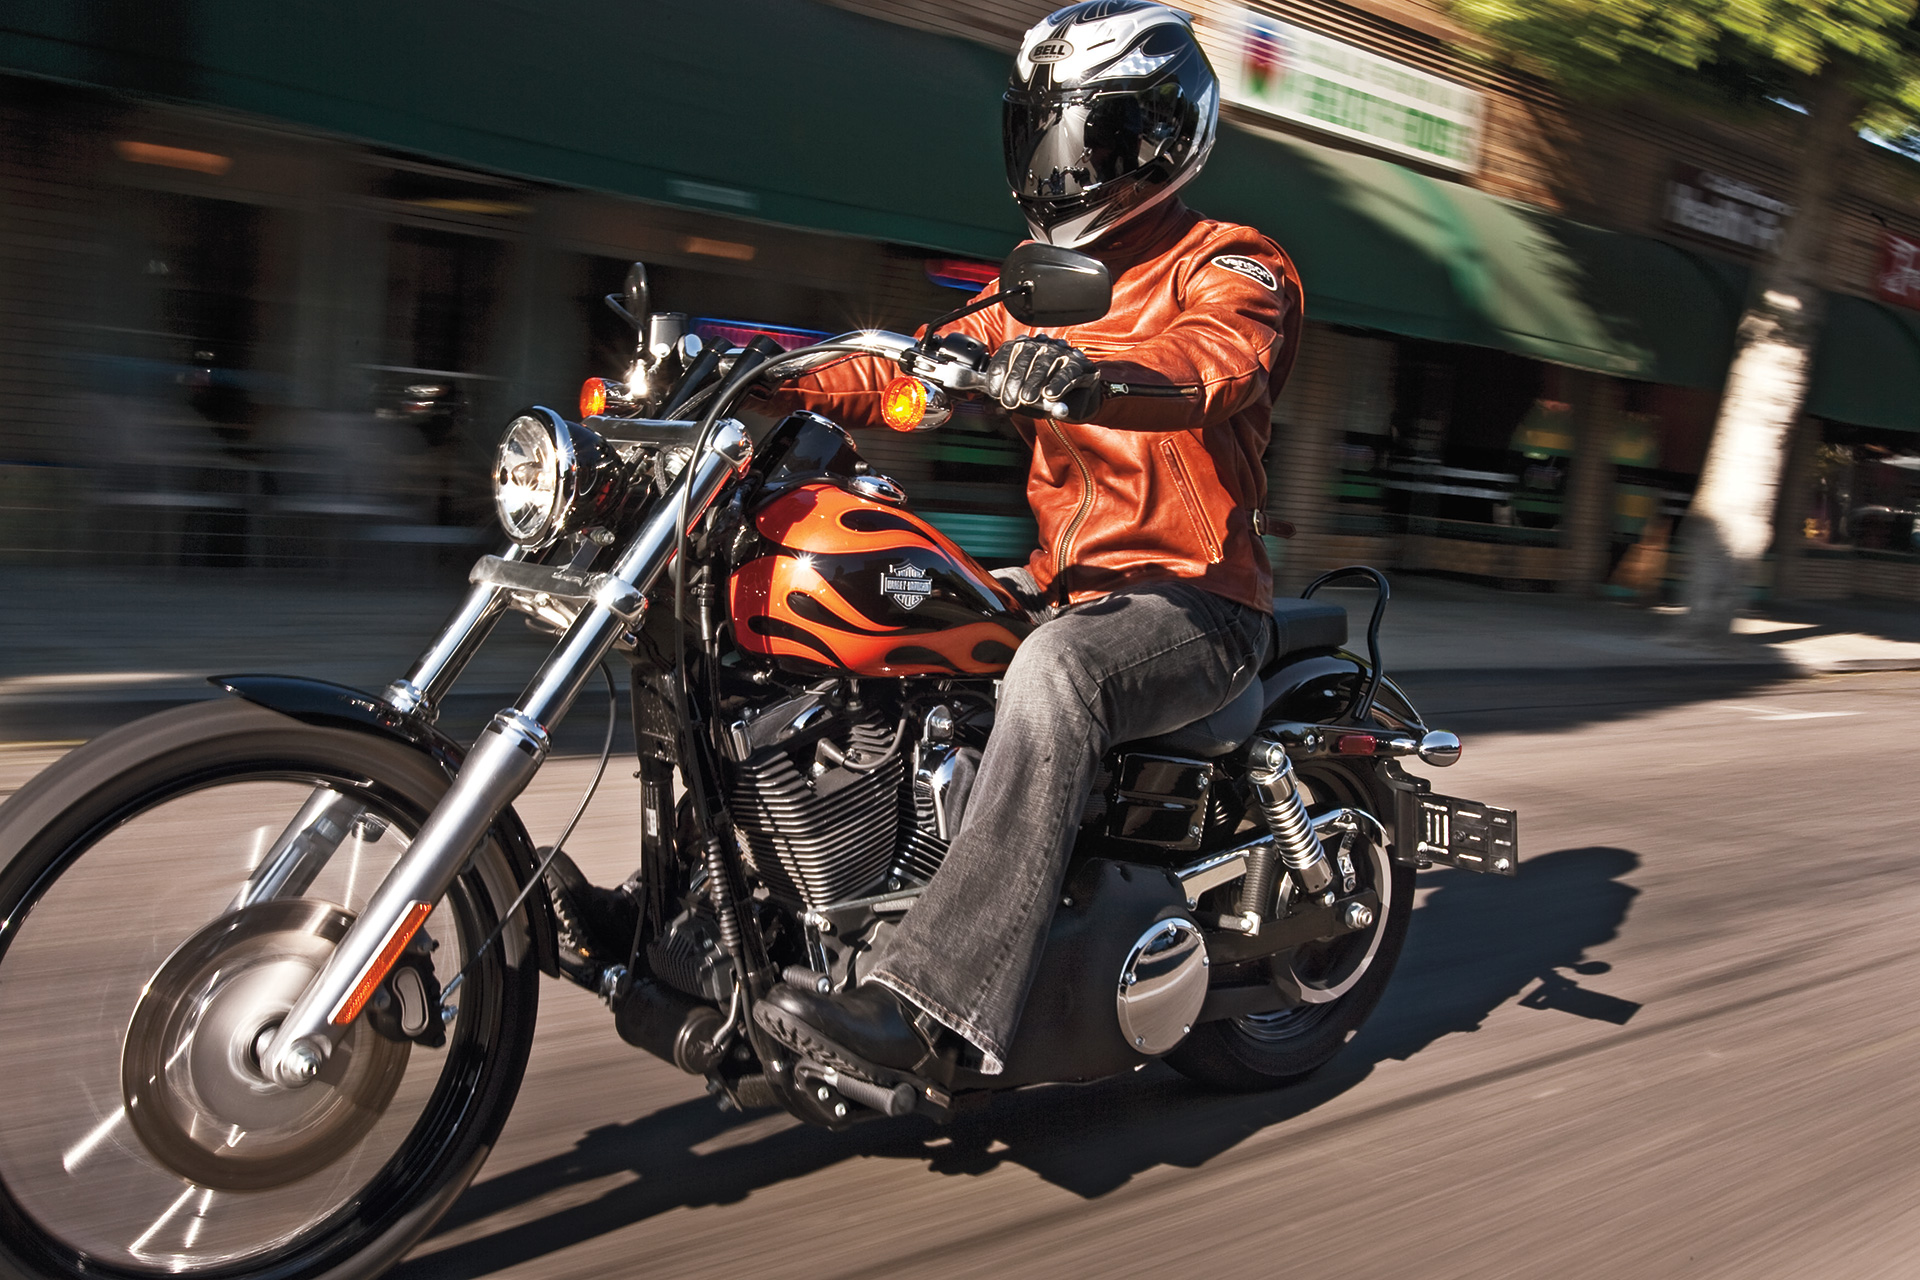 Harley Davidson Wide Glide Cruiser Motorcycle Review Road Test Cycle World